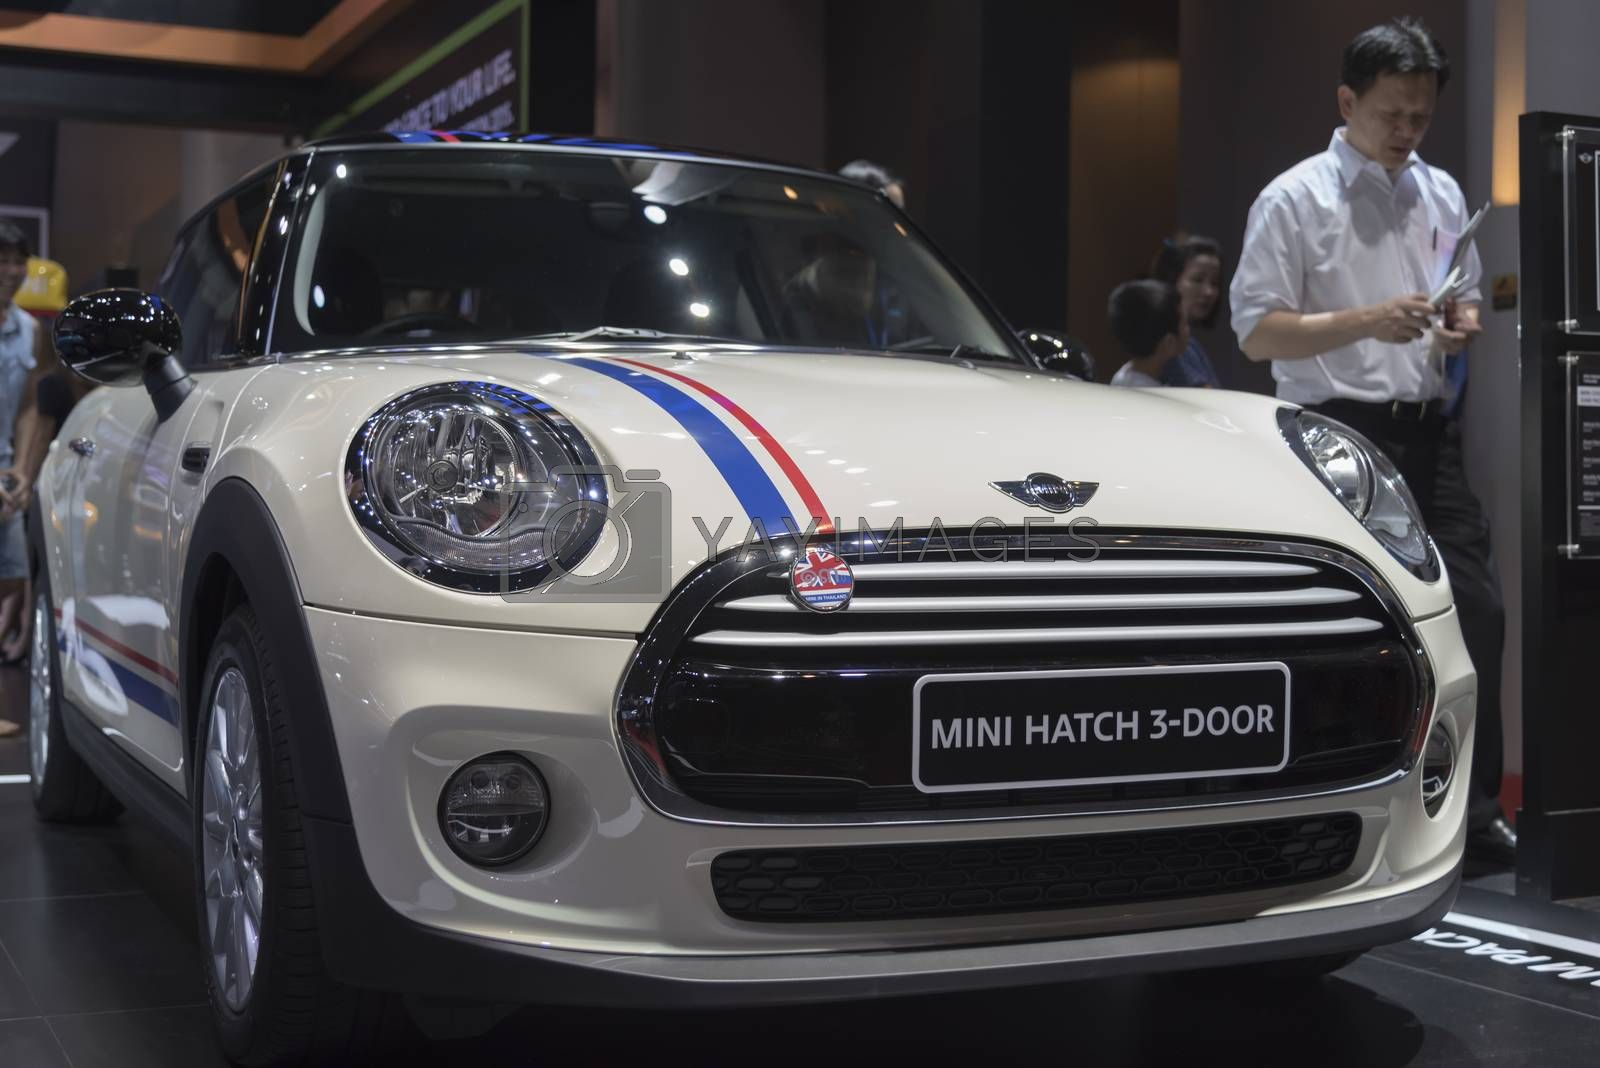 BANGKOK,THAILAND - APRIL 4 : car brand mini on April 4,2015 at the 36th Bangkok international motor show in Thailand.White color of mini hatch 3-door car brand.